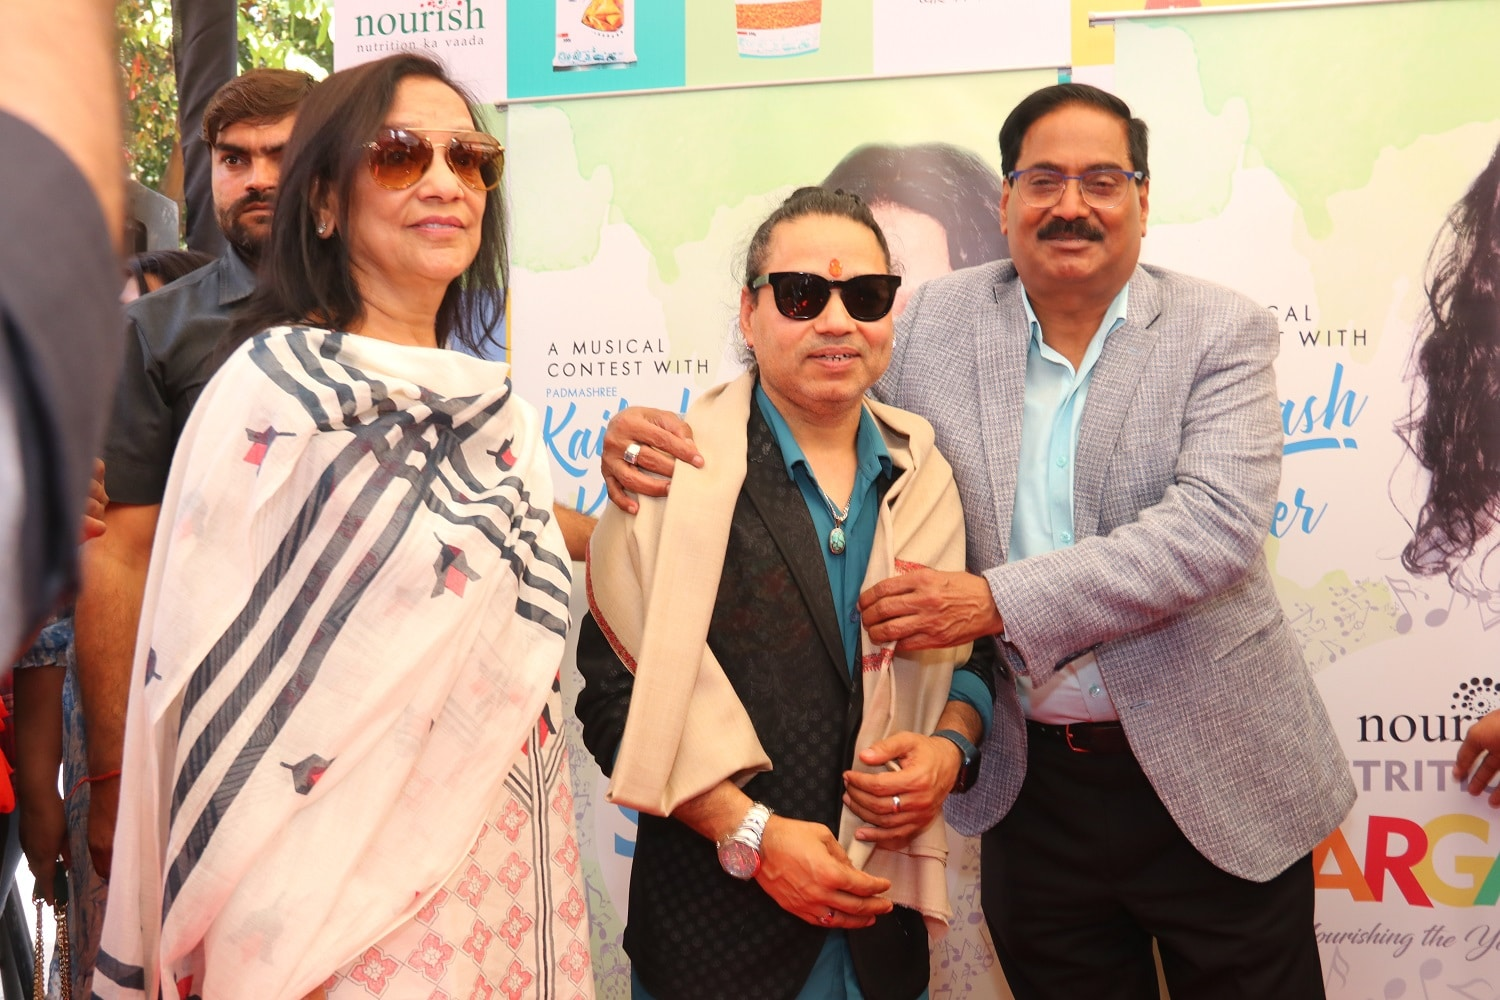 Ghanshyam-Khandelwal-Managing-Director-BL-Agro-with-Bollywood-Singer-Kailash-Kher-at-the-opening-of-Nourish-store-at-Janpath.jpg